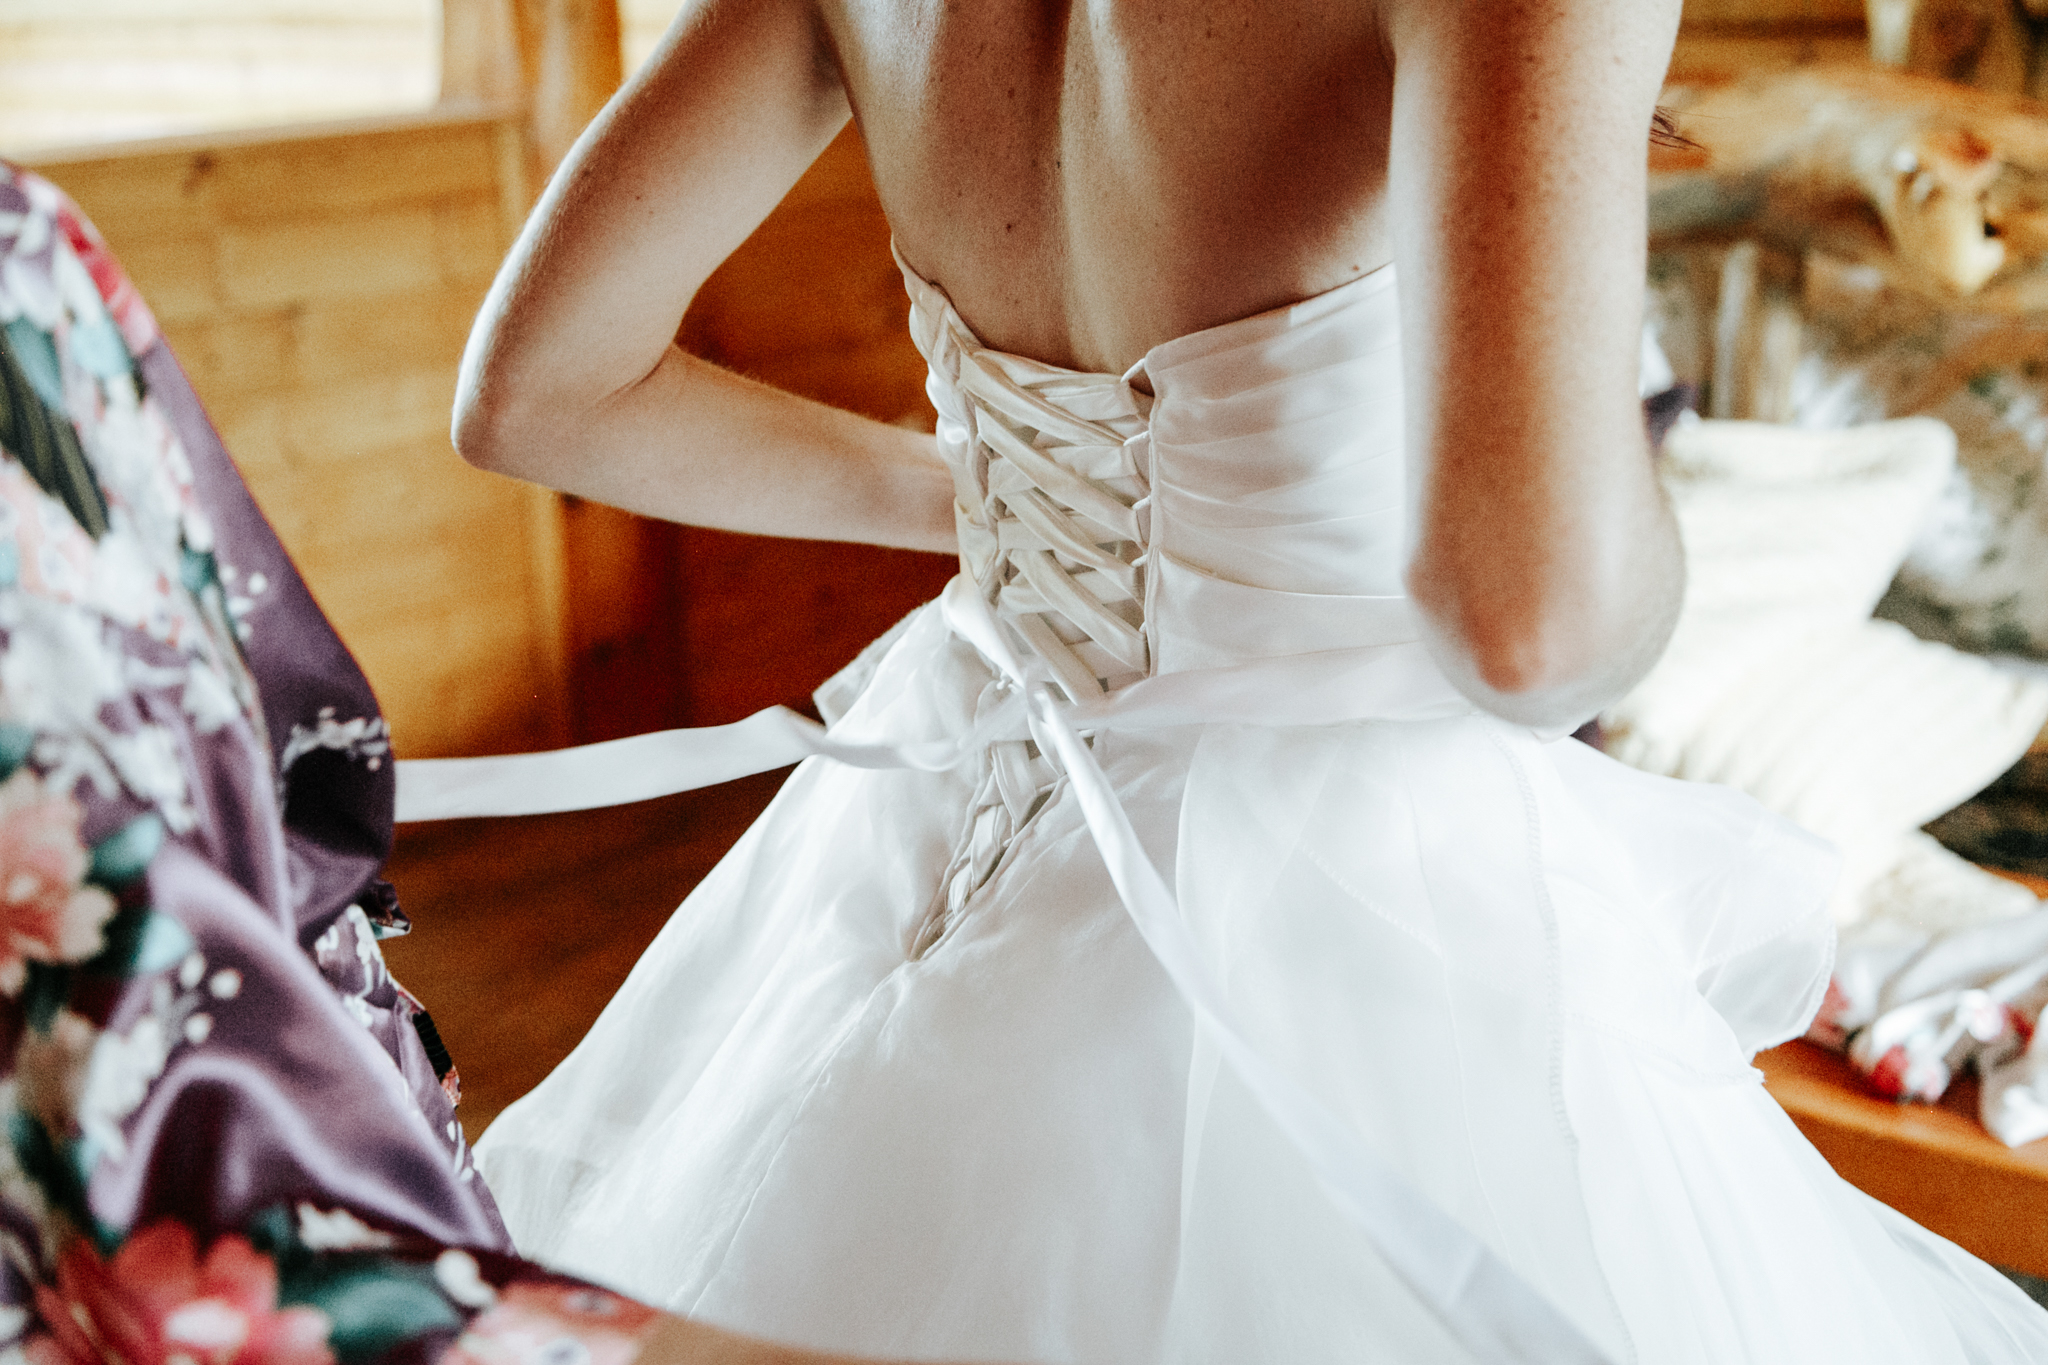 waterton-wedding-photographer-love-and-be-loved-photography-lethbridge-calgary-adam-jodie-image-picture-photo-11.jpg